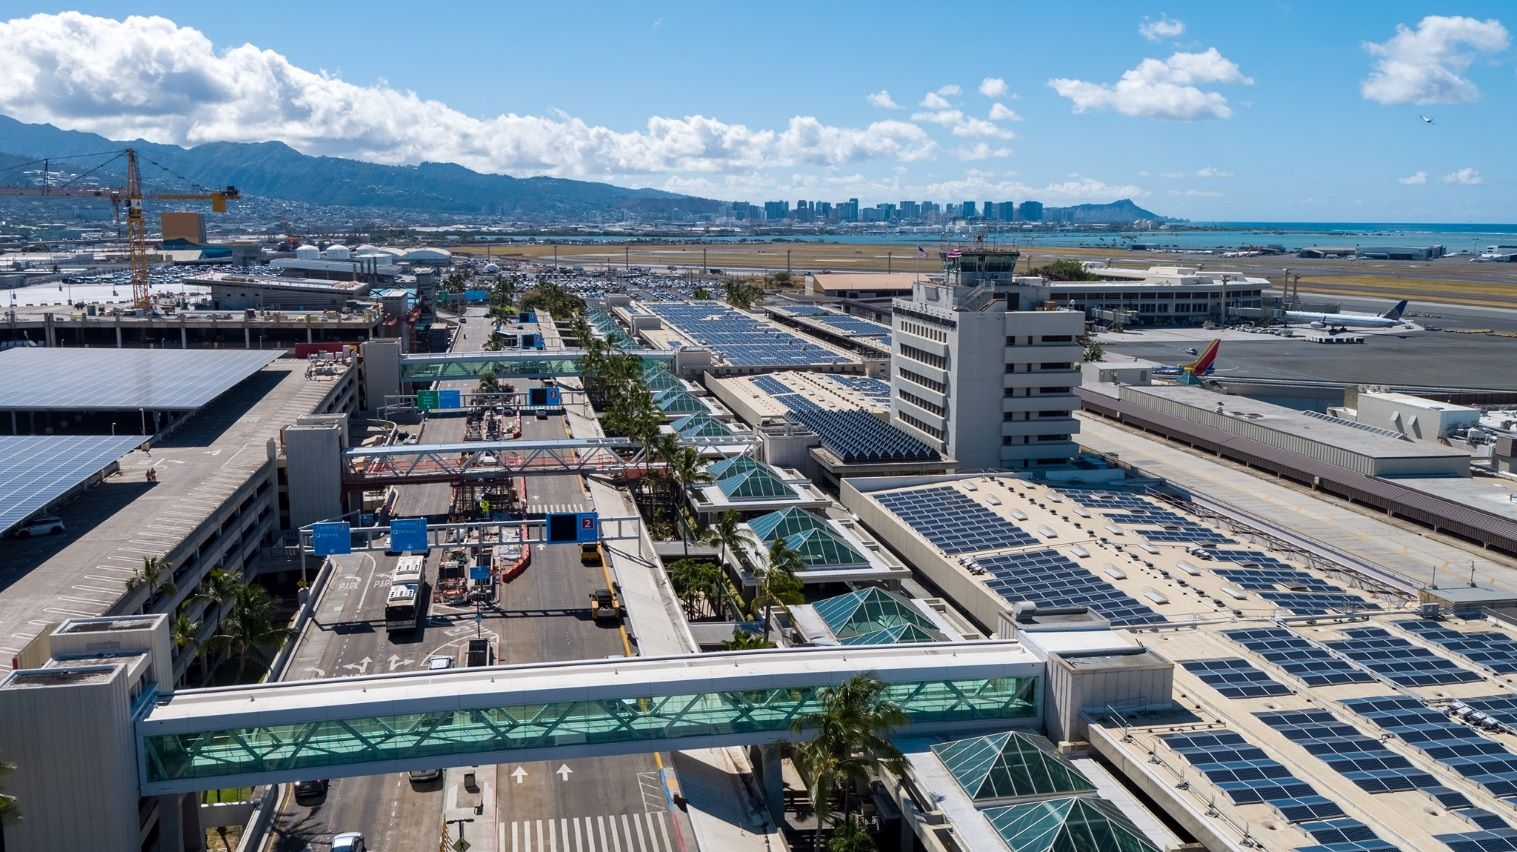 Hawaii airport and downtown view